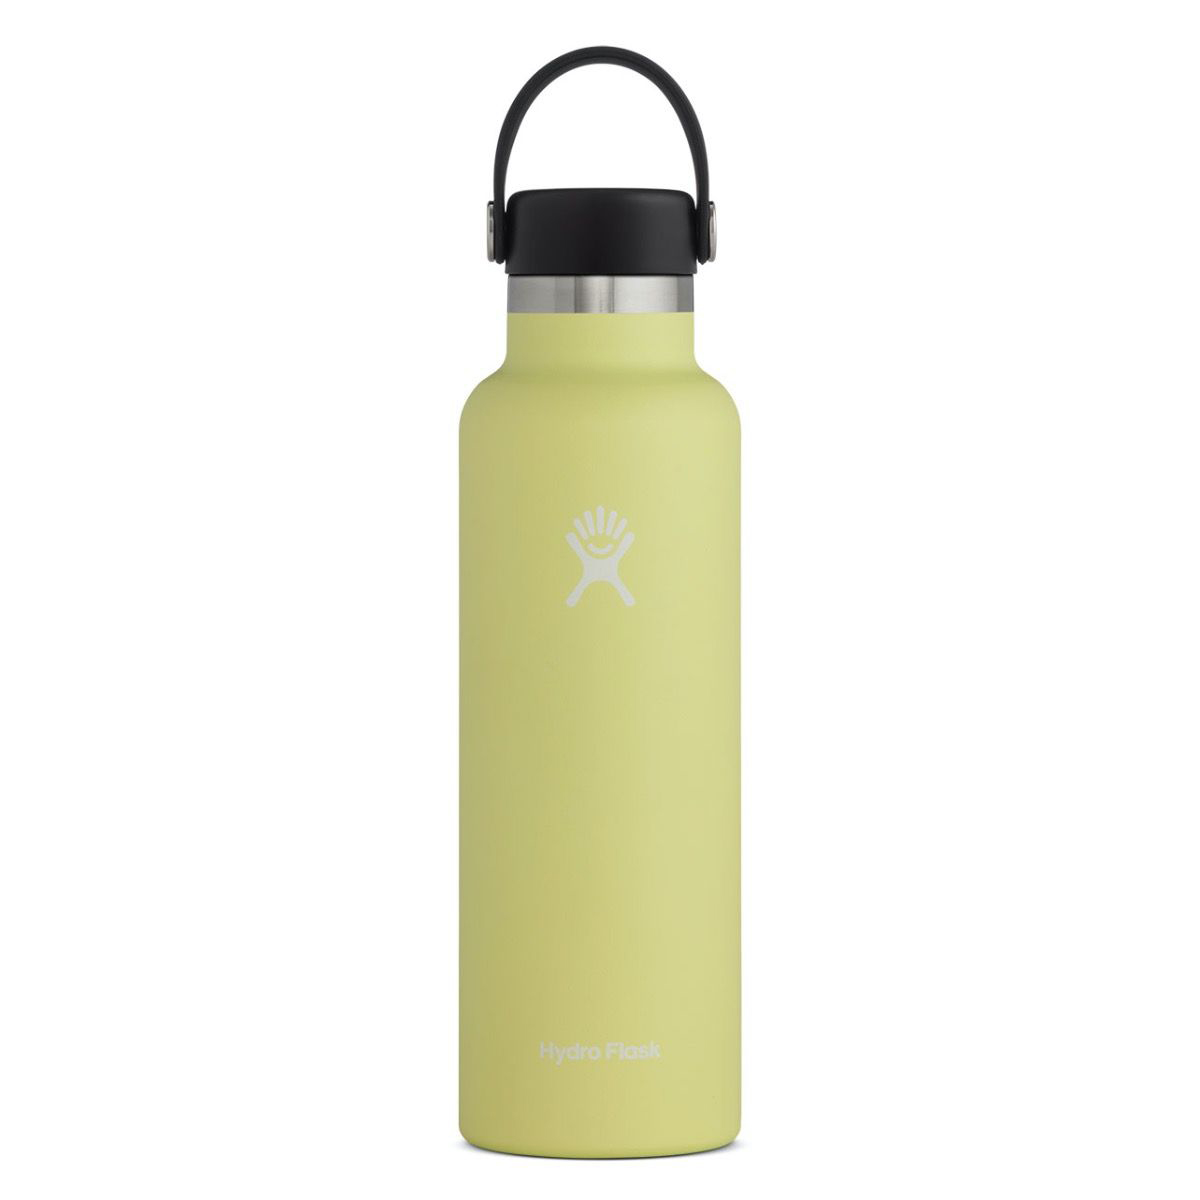 Hydro Flask 21 oz Standard Mouth Bottle - Color: Pineapple - Size: 21OZ, Pineapple, large, image 1